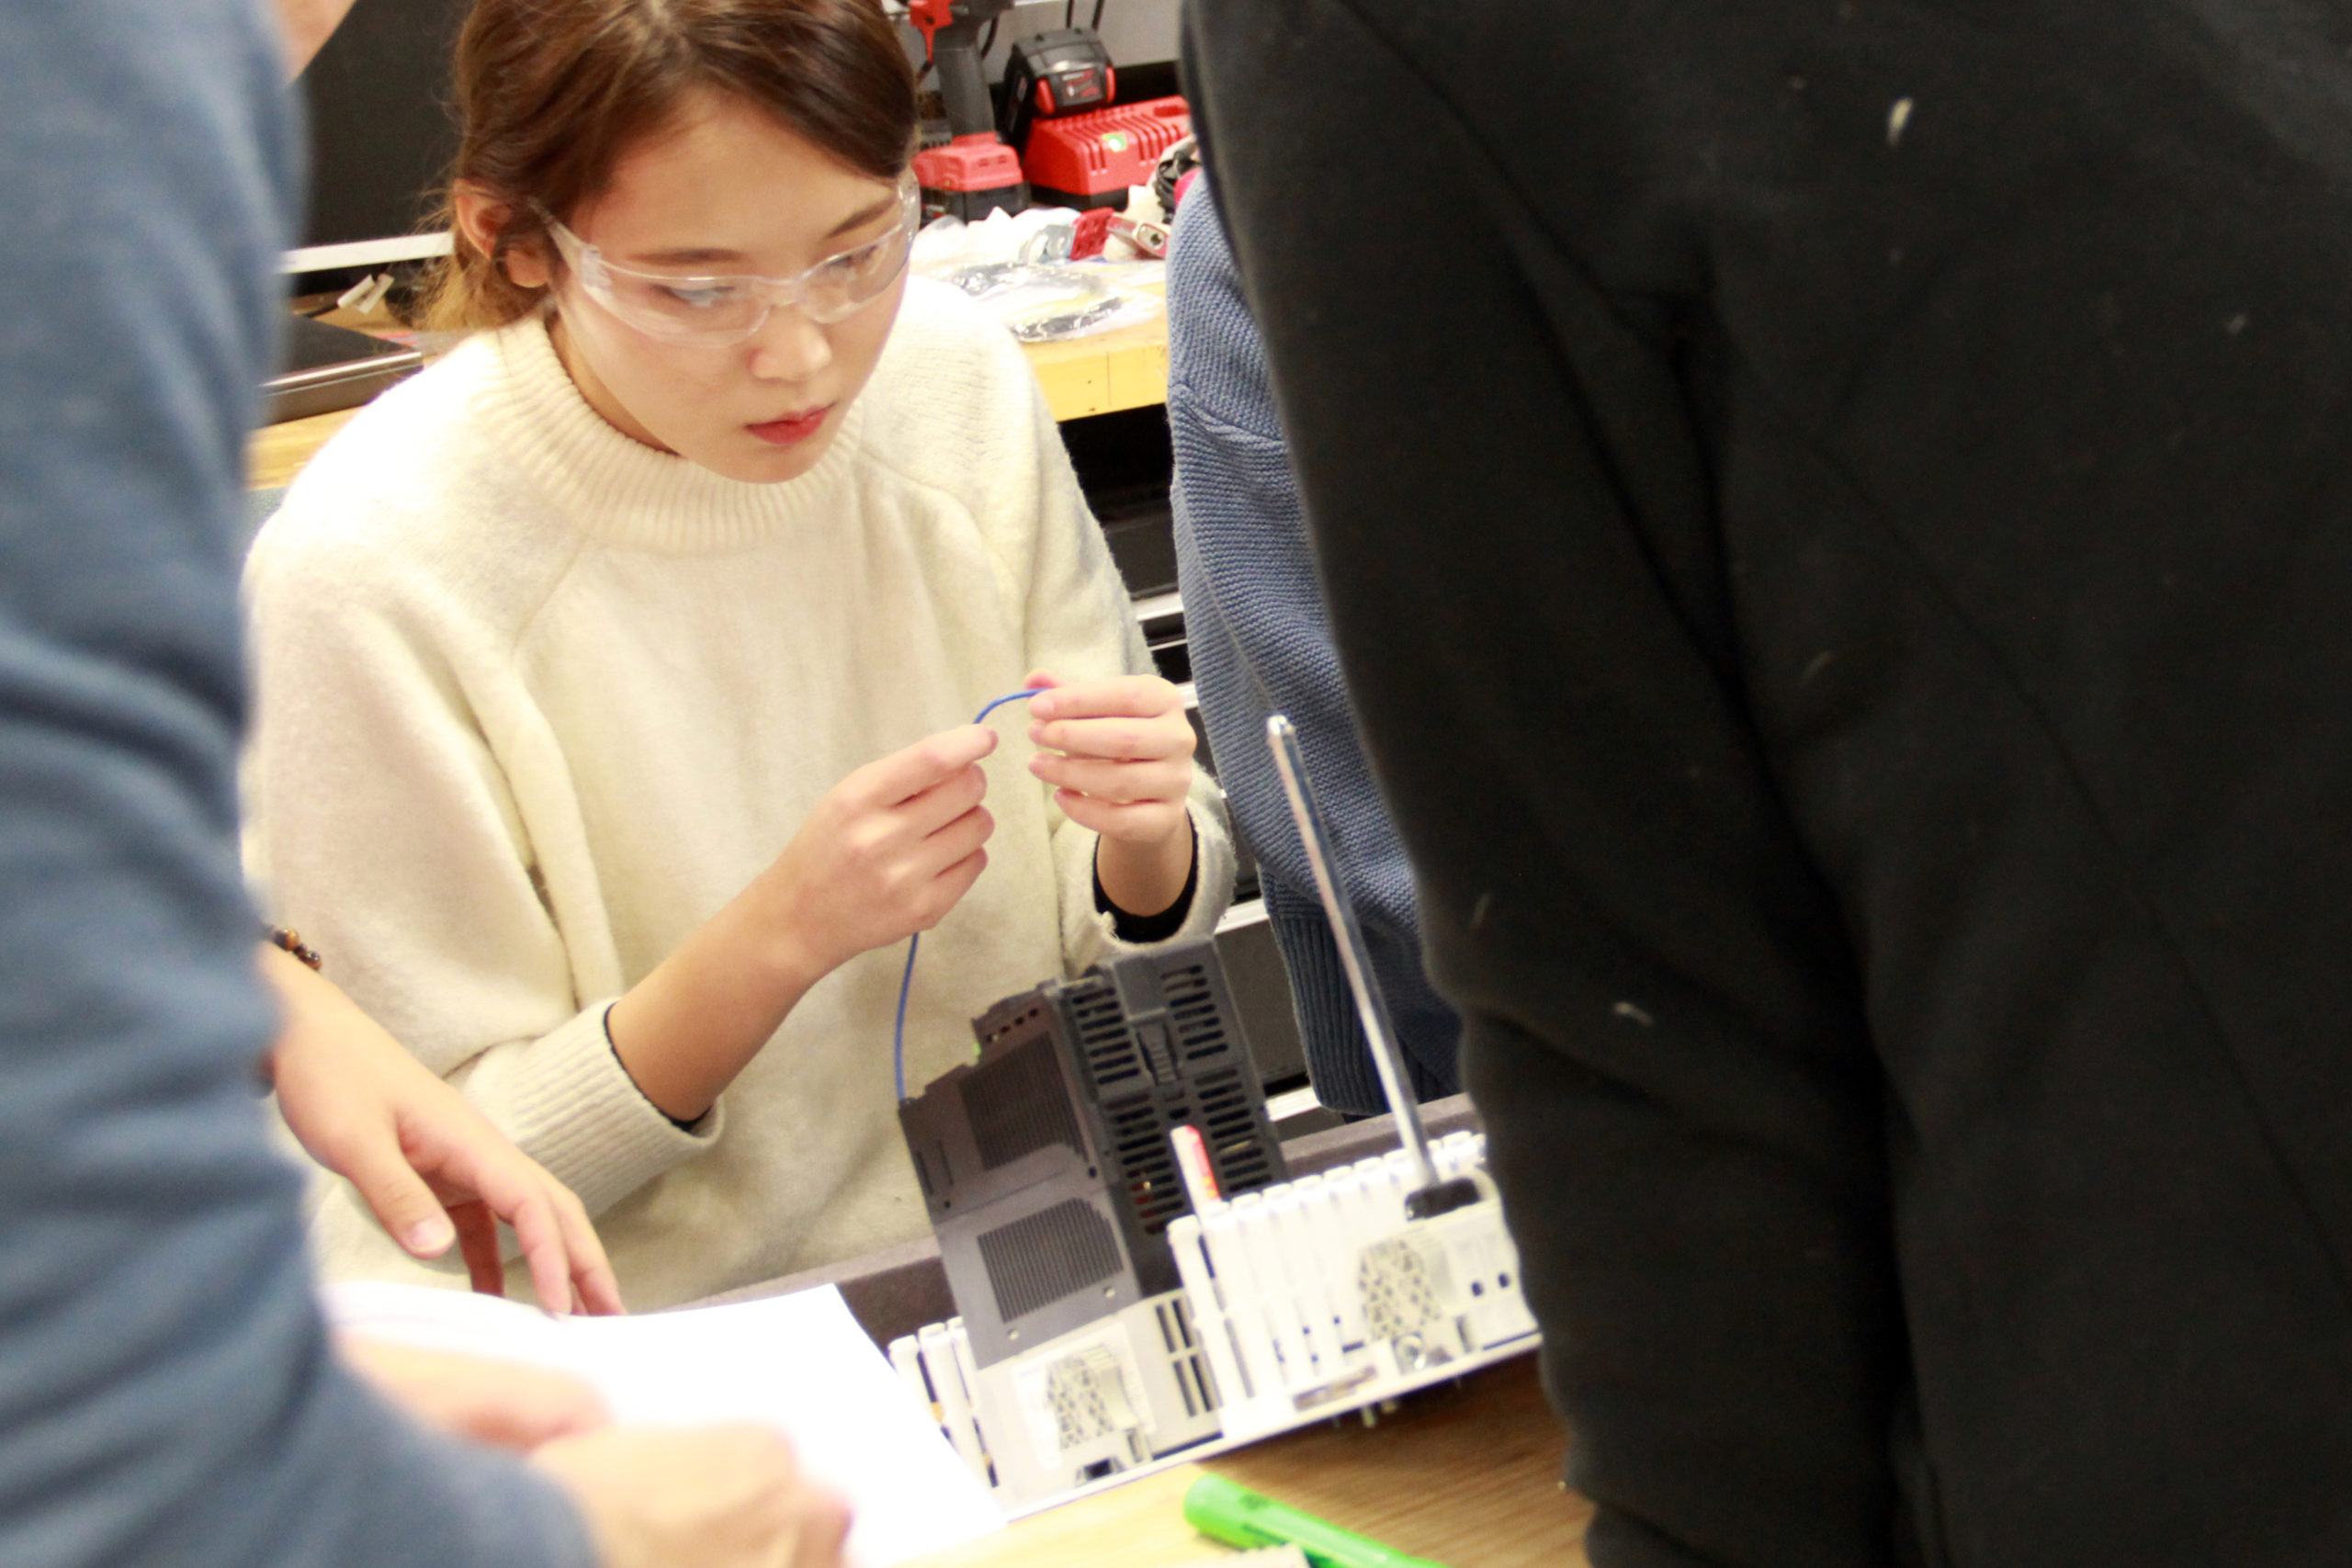 Faculty and students work to provide solutions to specific industry problems while providing students with experiential learning opportunities.